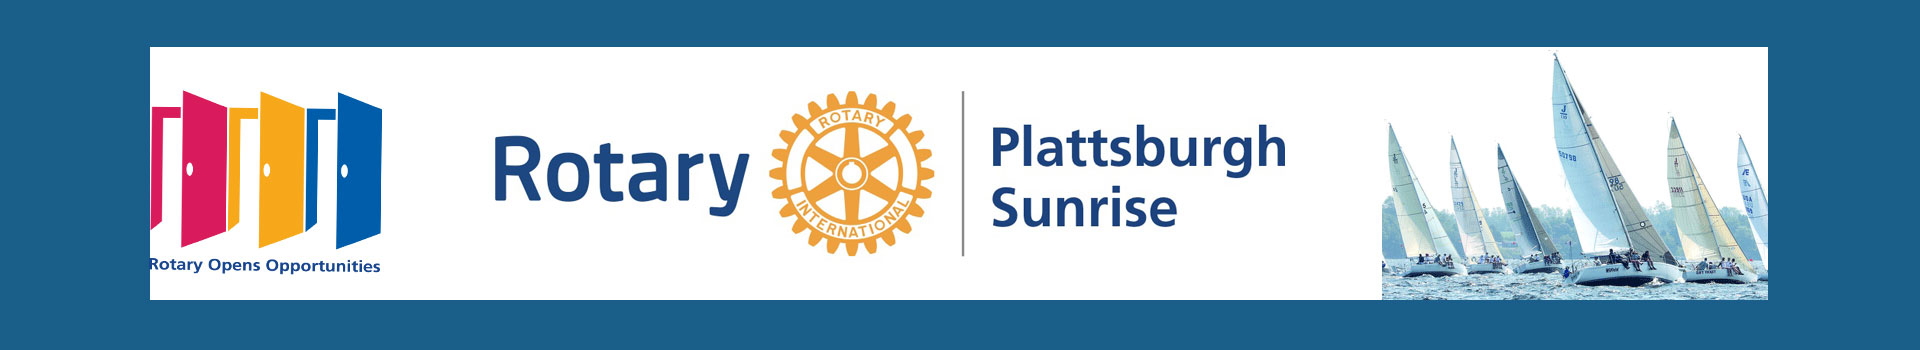 Rotary Sunrise Club of Plattsburgh